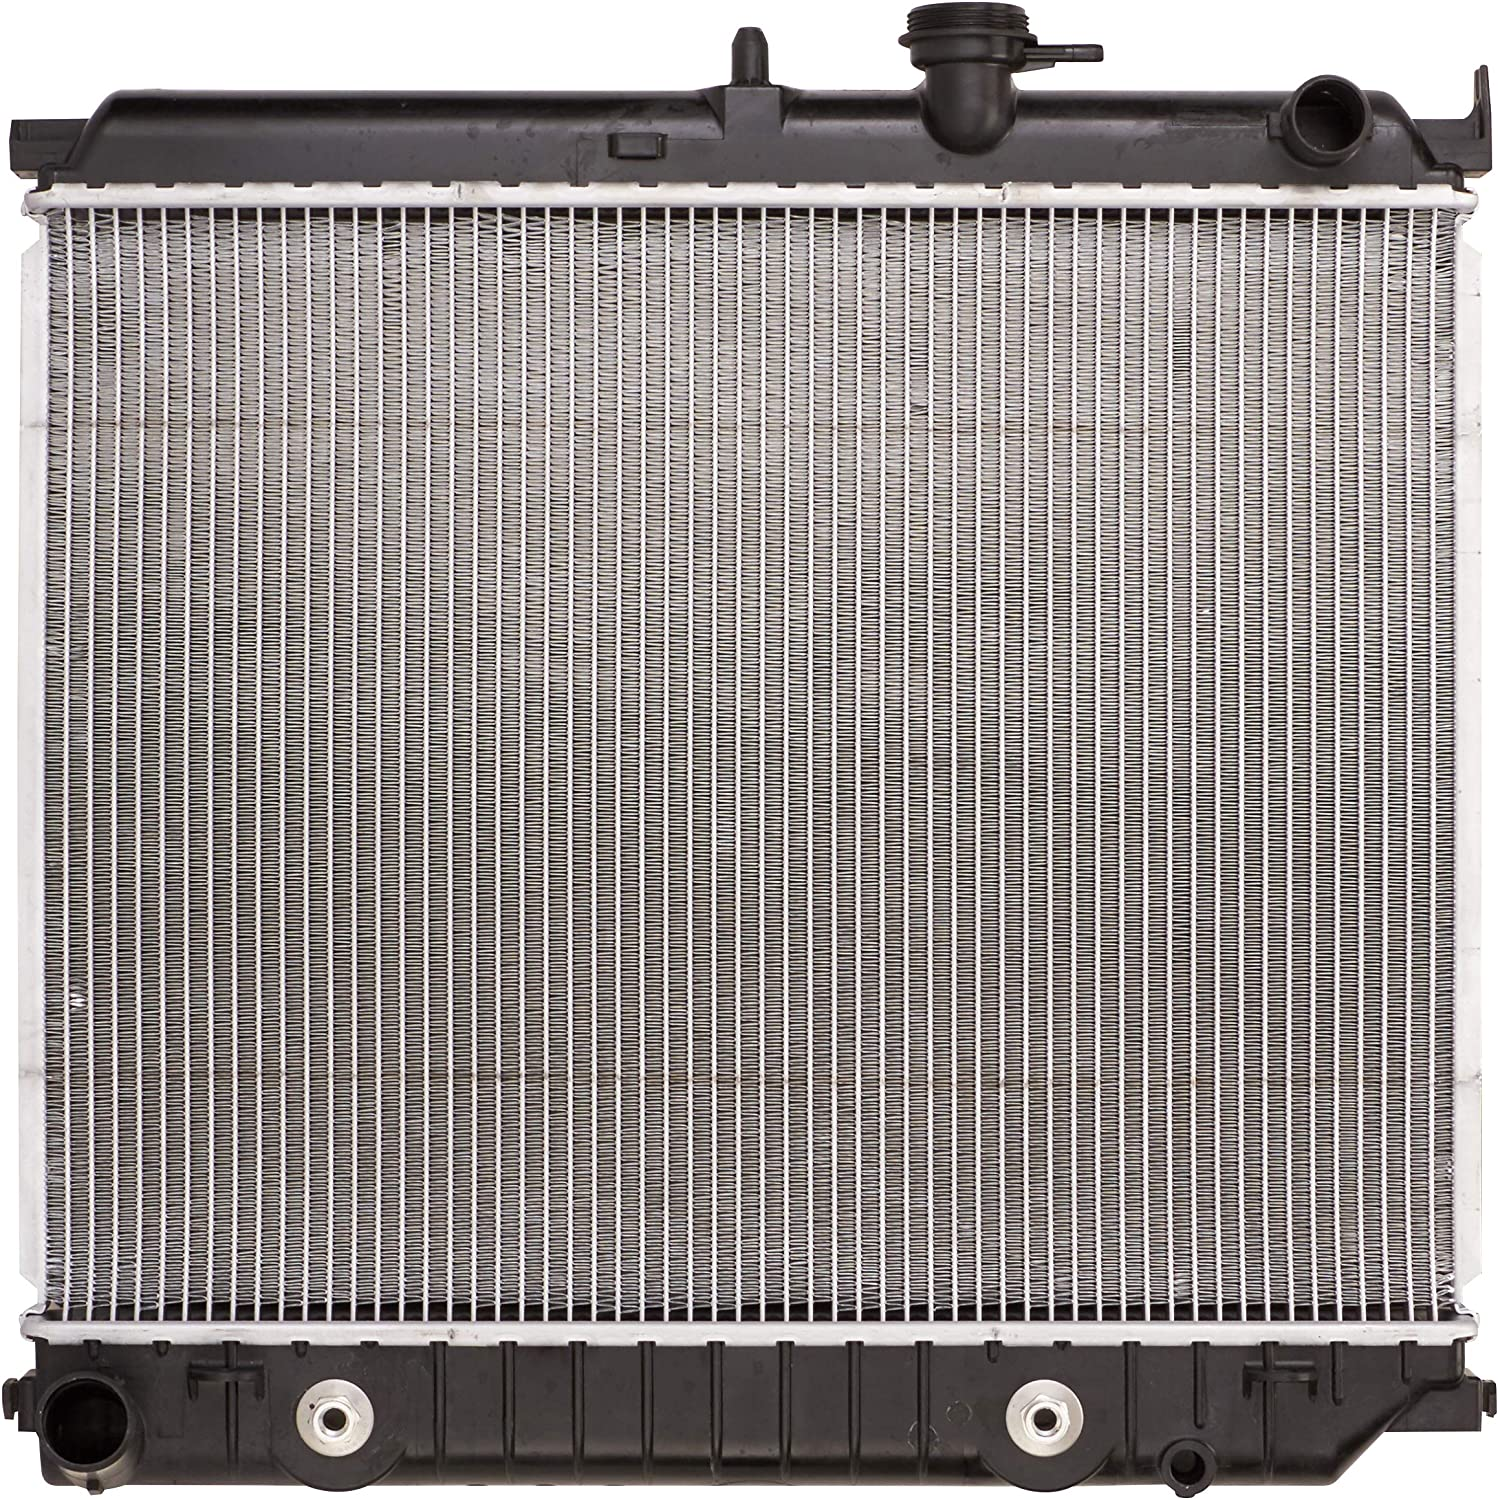 Spectra Premium CU2707 Complete Radiator for General Motors